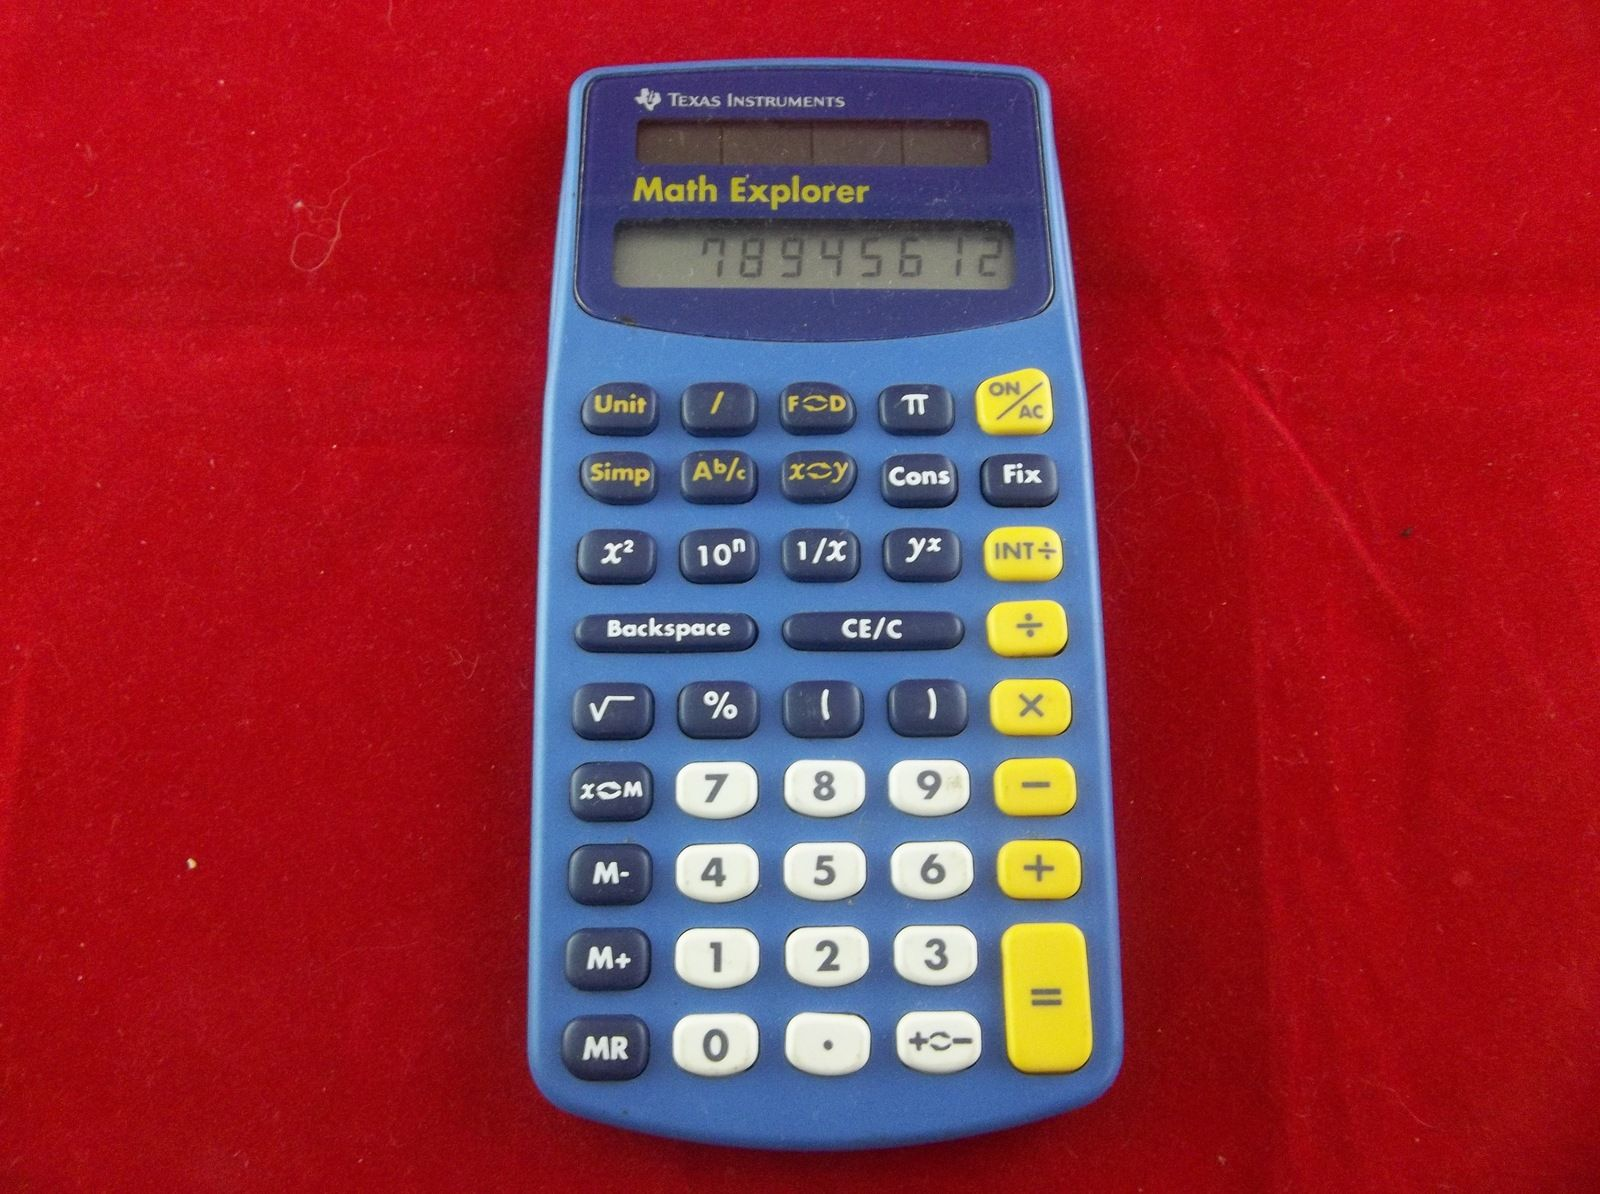 texas instruments math explorer manual